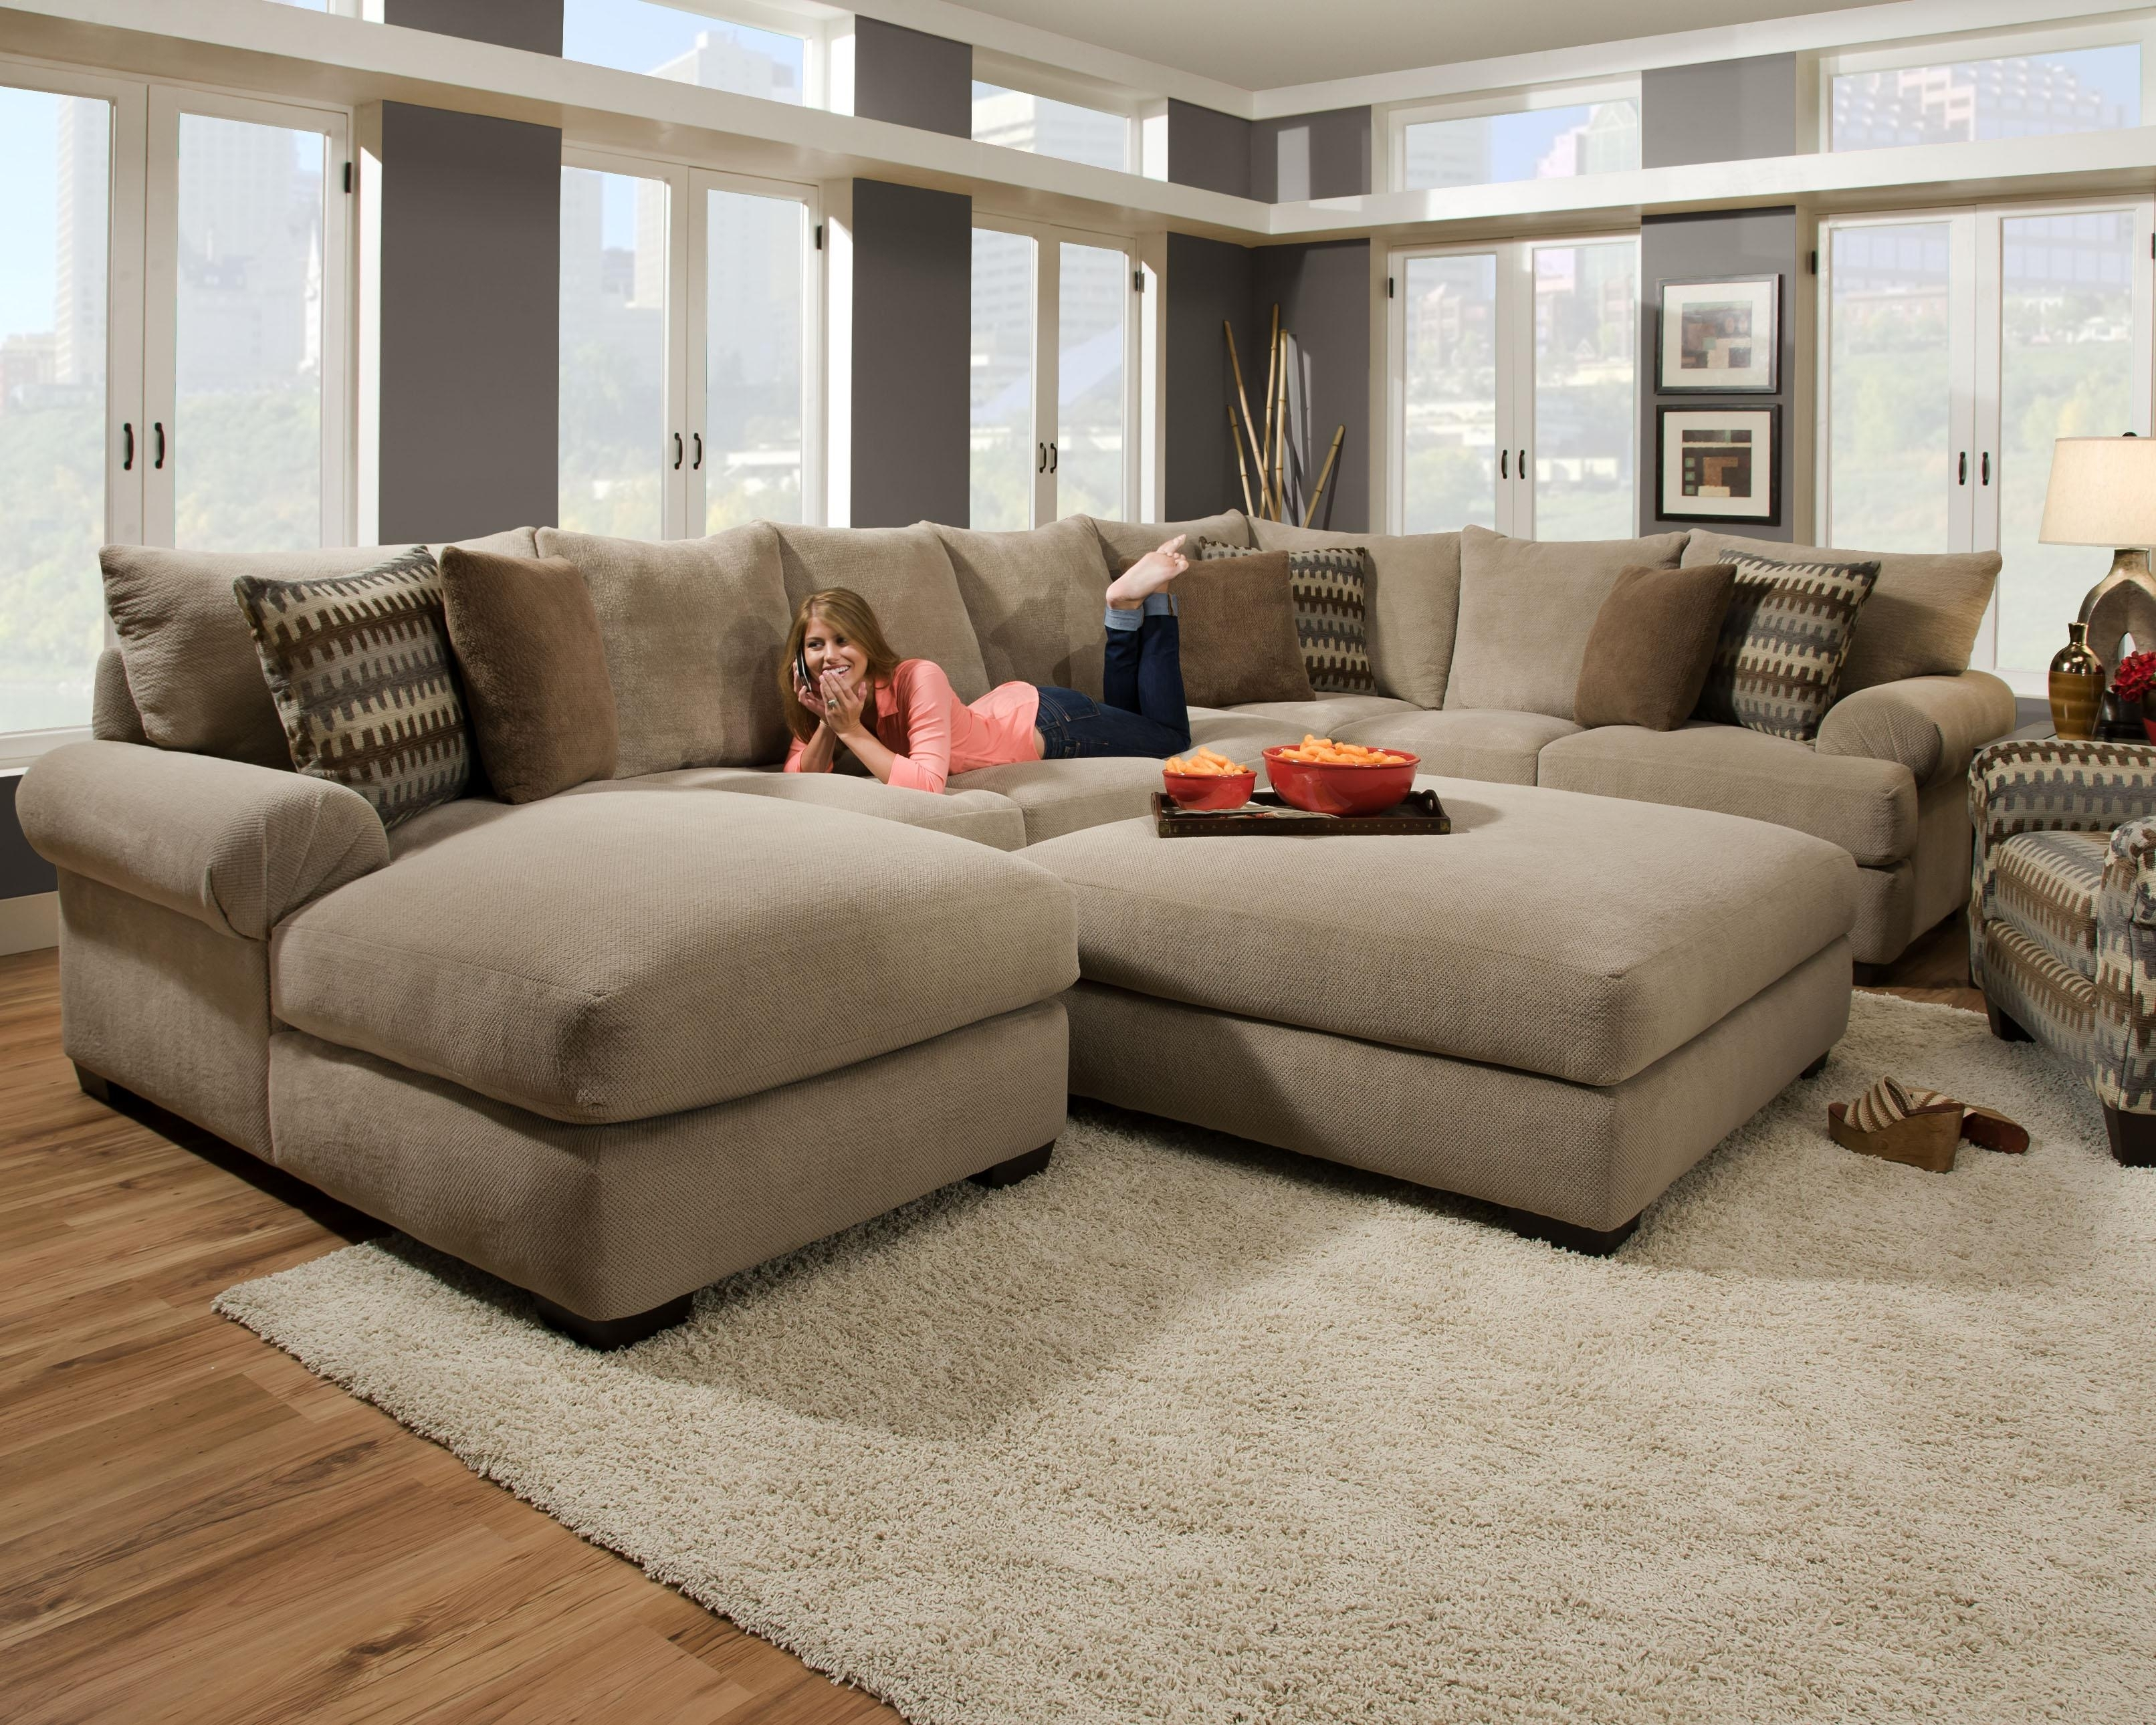 Epic Comfy Sectional Sofas 44 With Additional Best Sleeper Sofa within Sectional Sofas Under 1000 (Image 8 of 15)